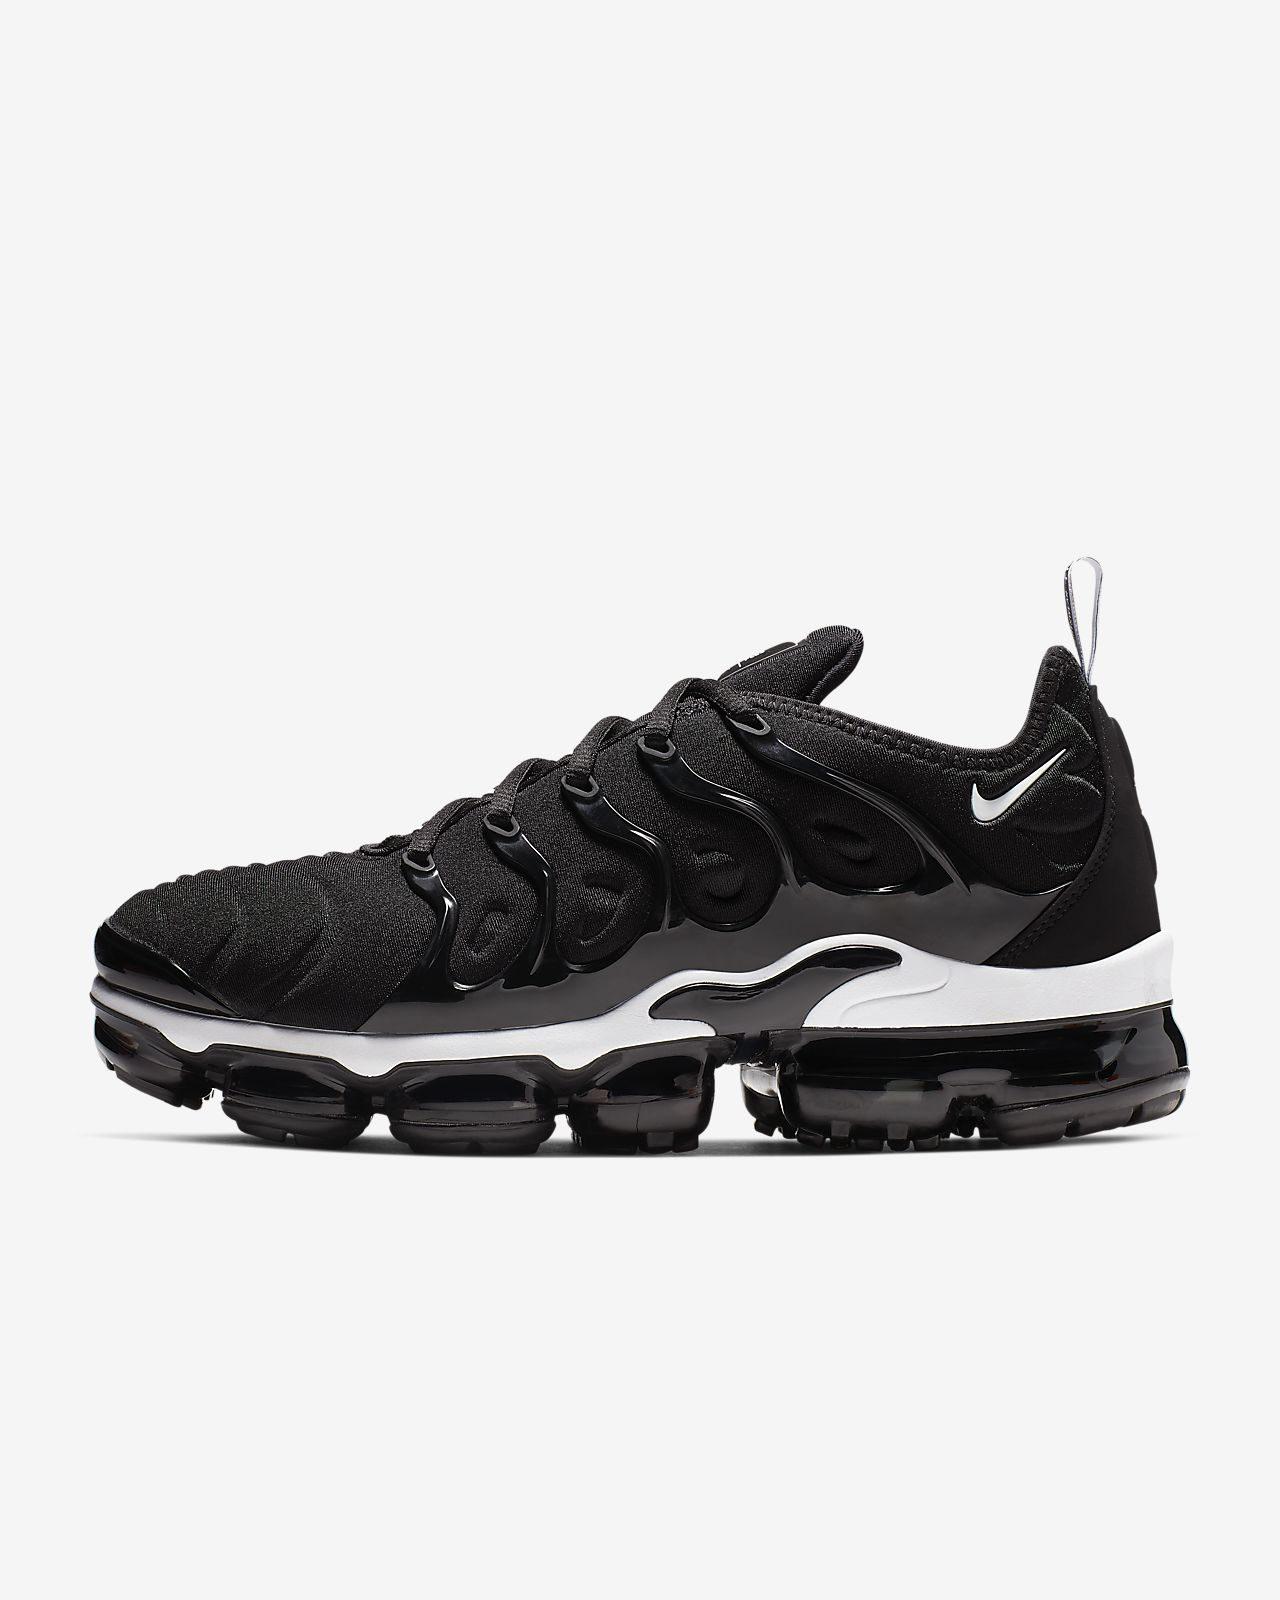 best service bed29 ae80f ... Nike Air VaporMax Plus Mens Shoe